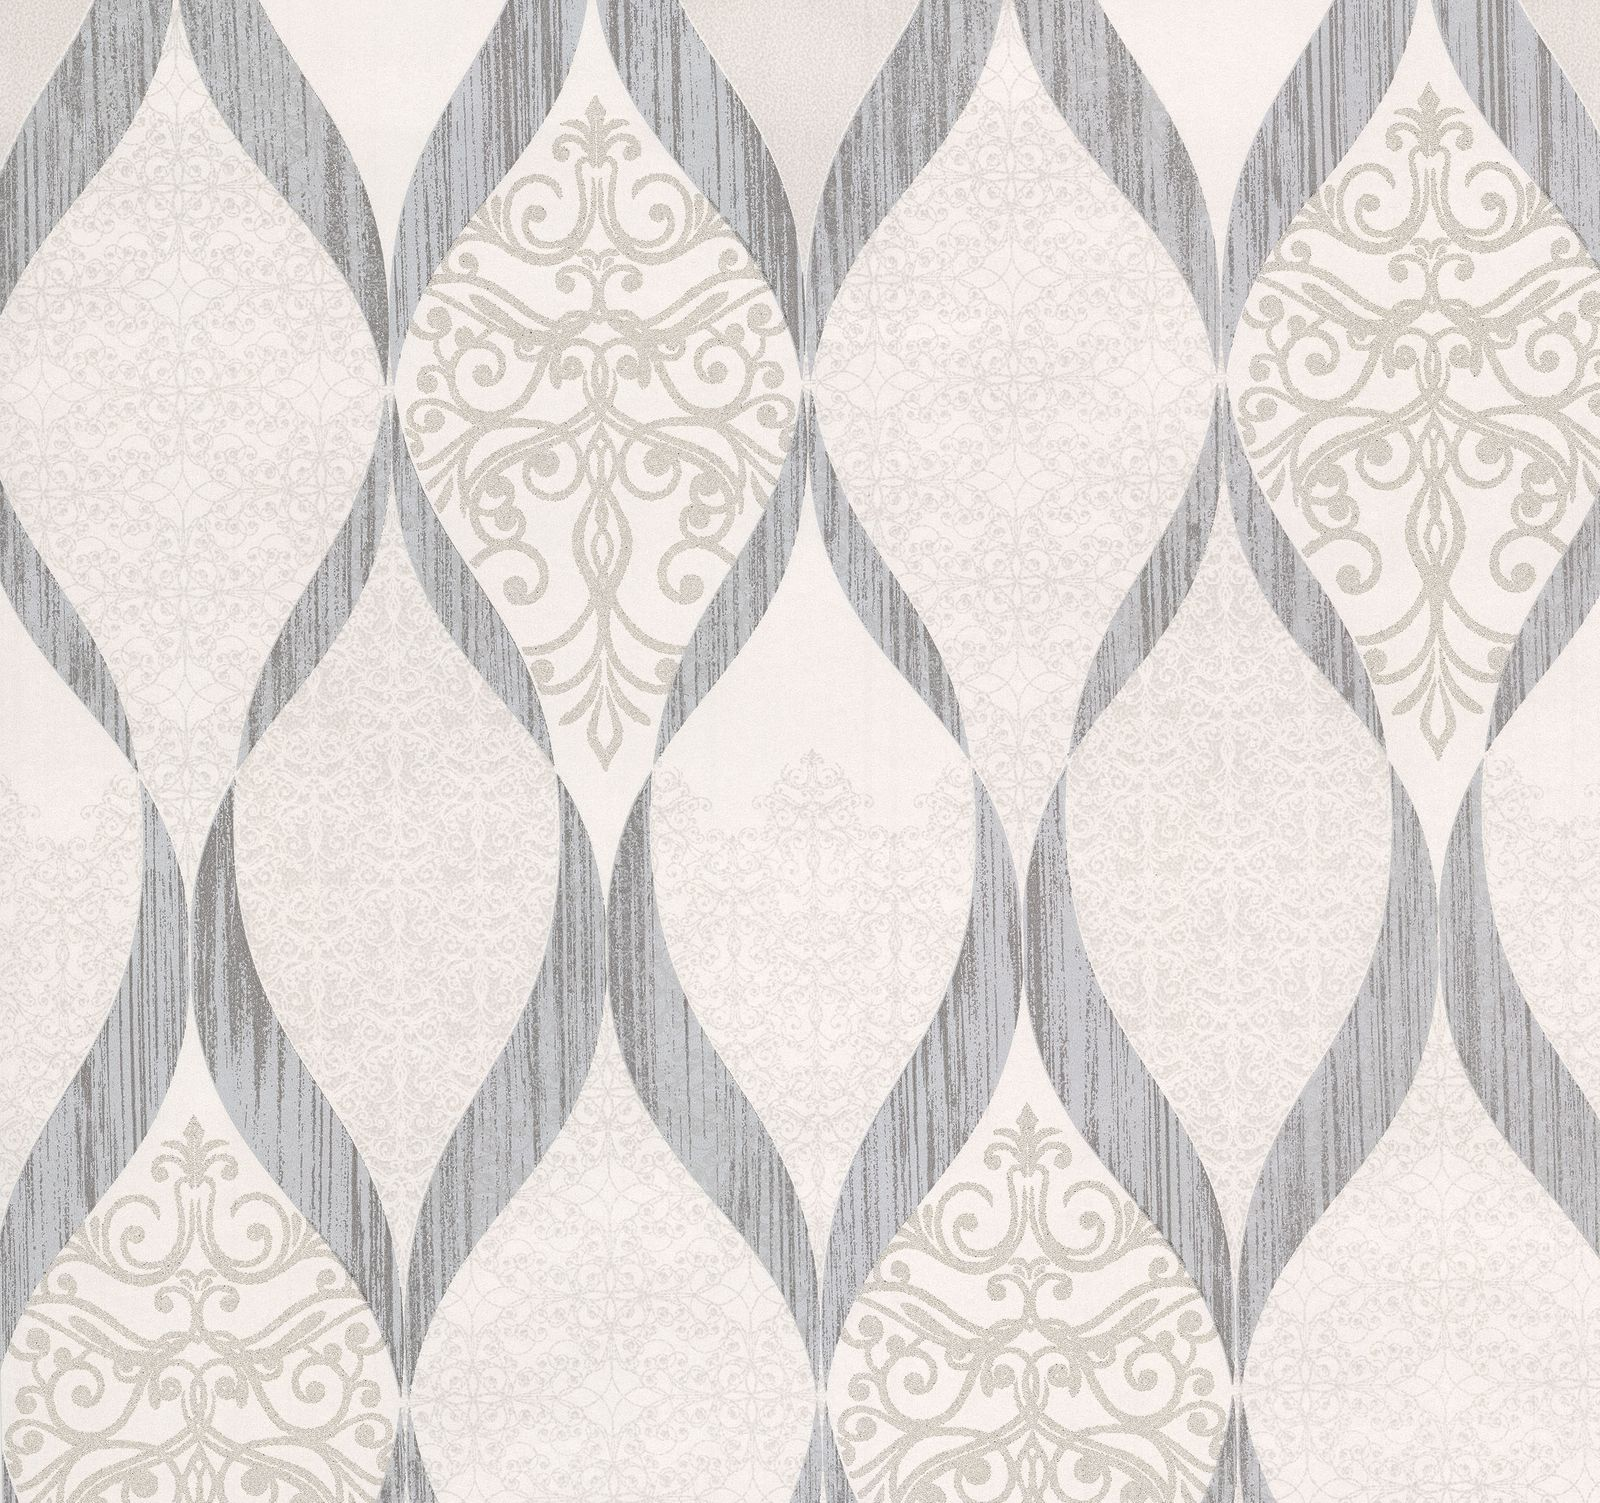 Wallpaper Kretschmer Deluxe Orient Glass Beads White Grey 41006 50